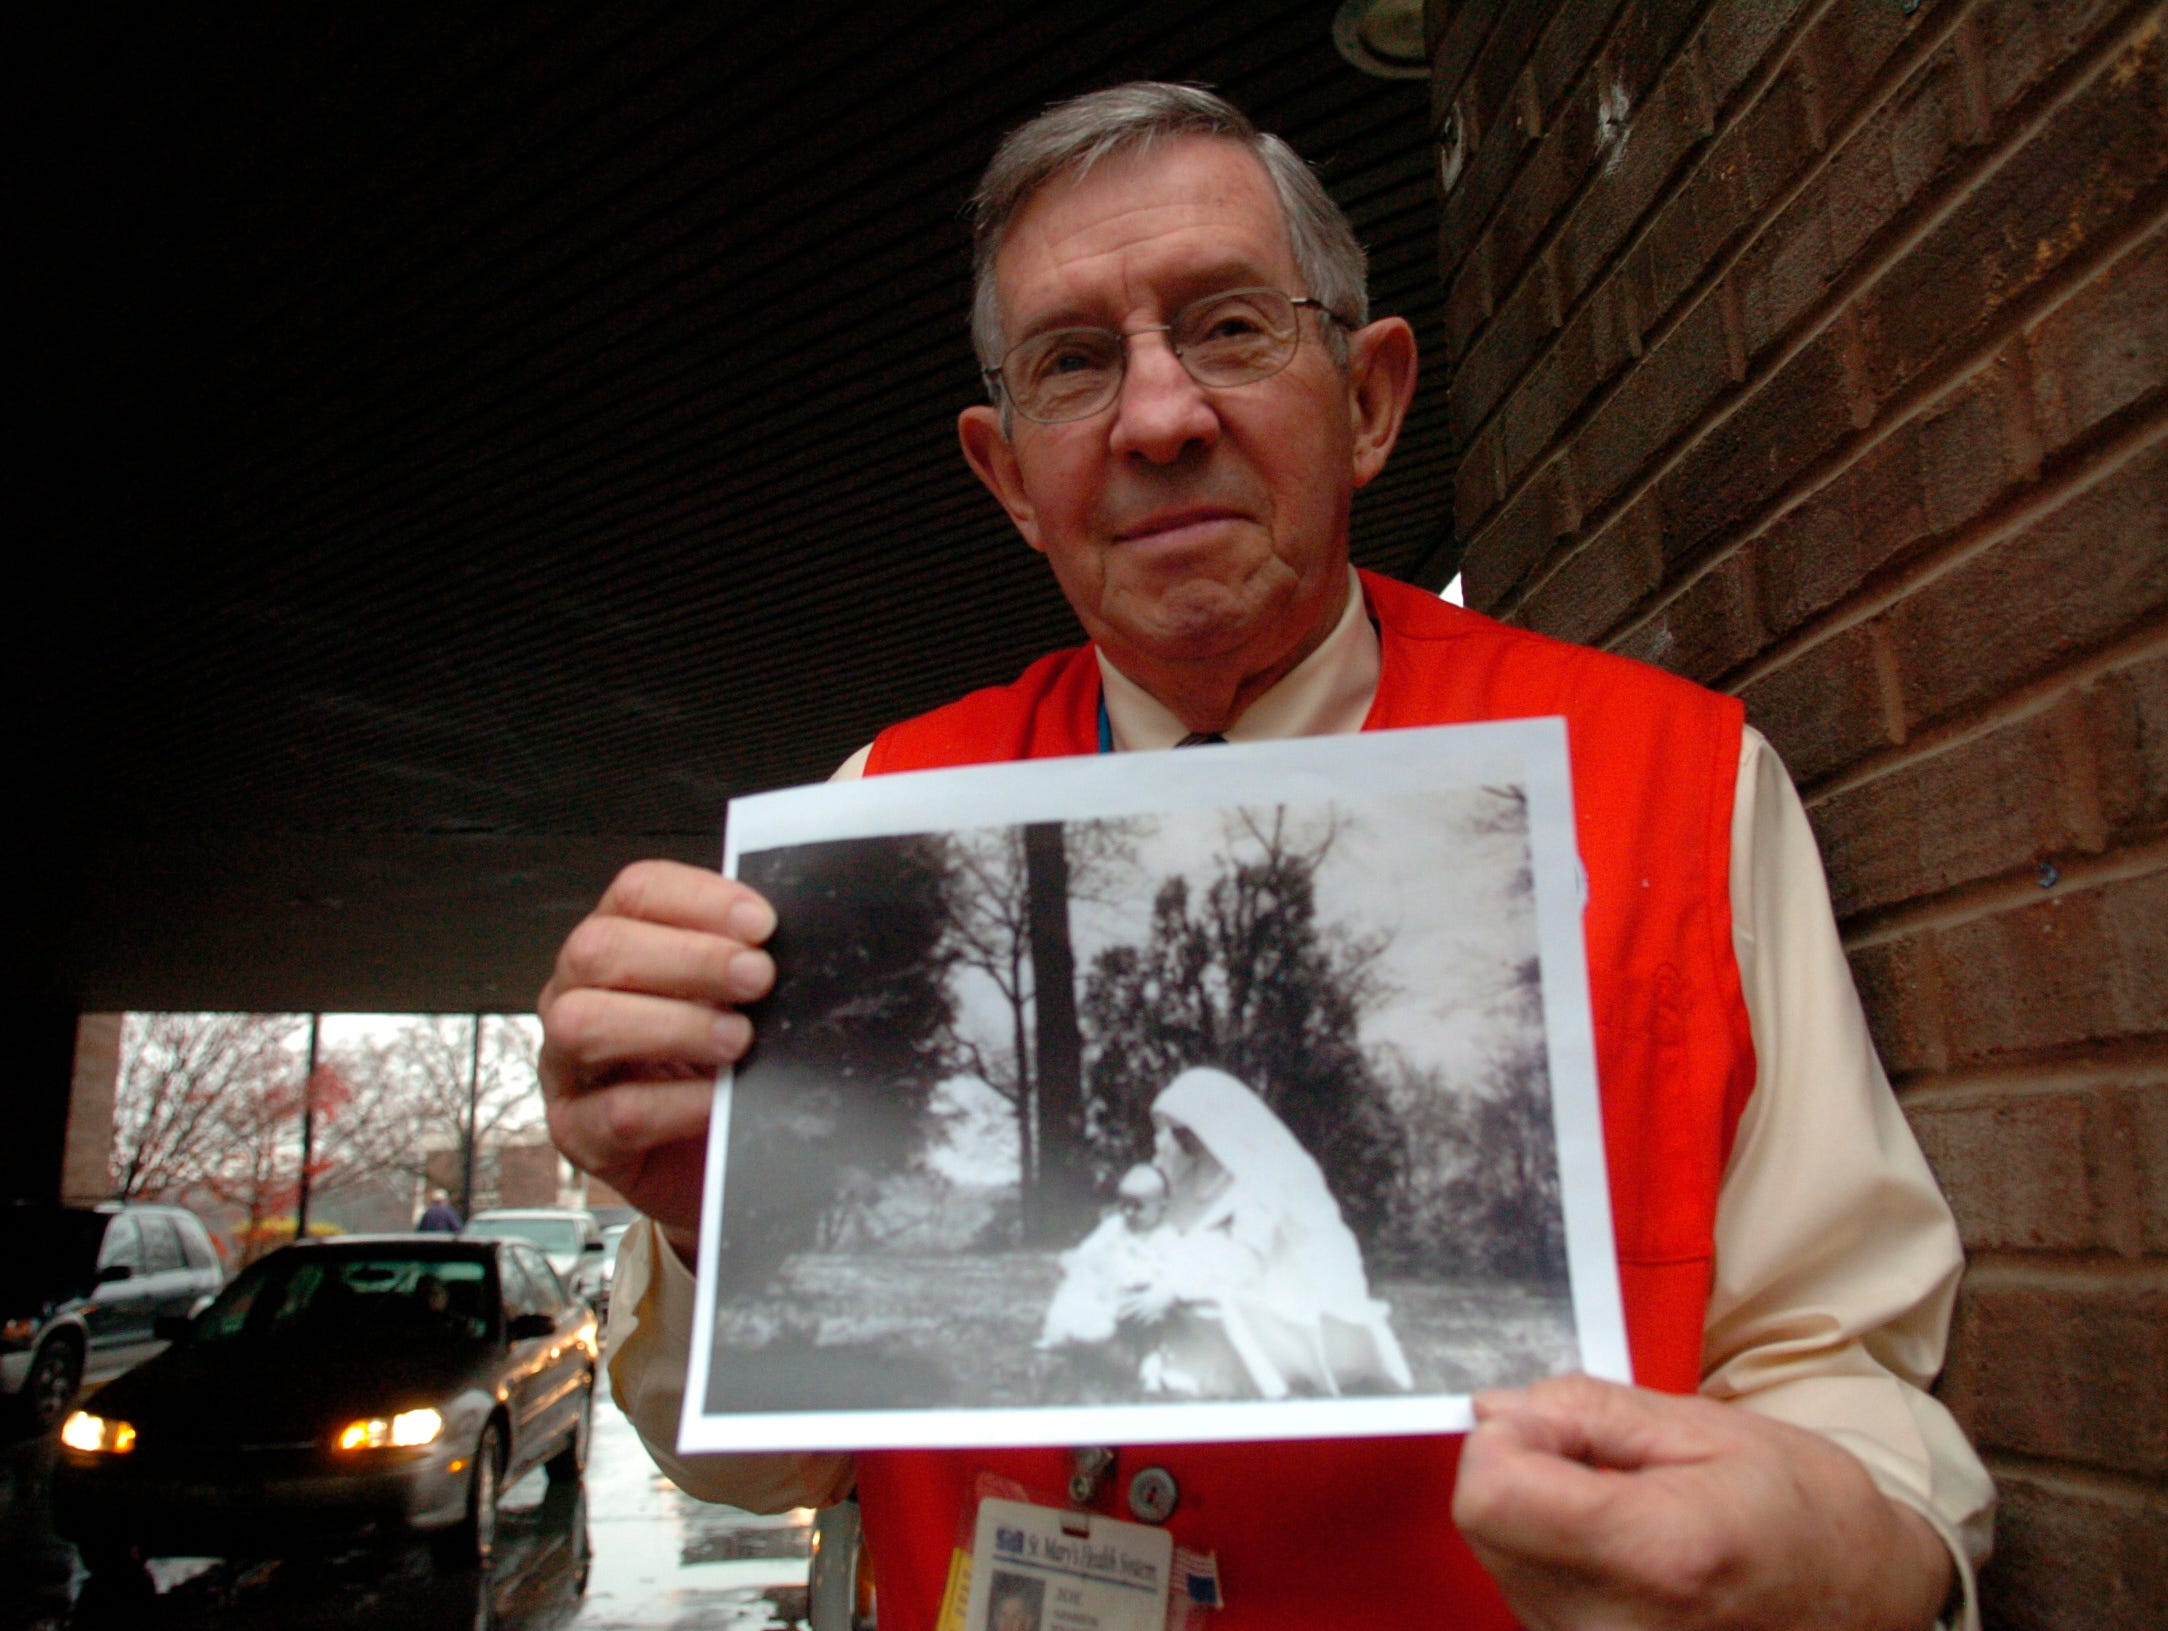 Joe Hannifin, right, President of St. Mary's auxillary volunteers, holds a photo of himself as a baby being held by a nun at St. Mary's Hospital while standing at the main entrance outside of the hospital Thursday afternoon in North Knoxville. Hannifin was a baby raised at St. Mary's Hospital.--12/09/2004